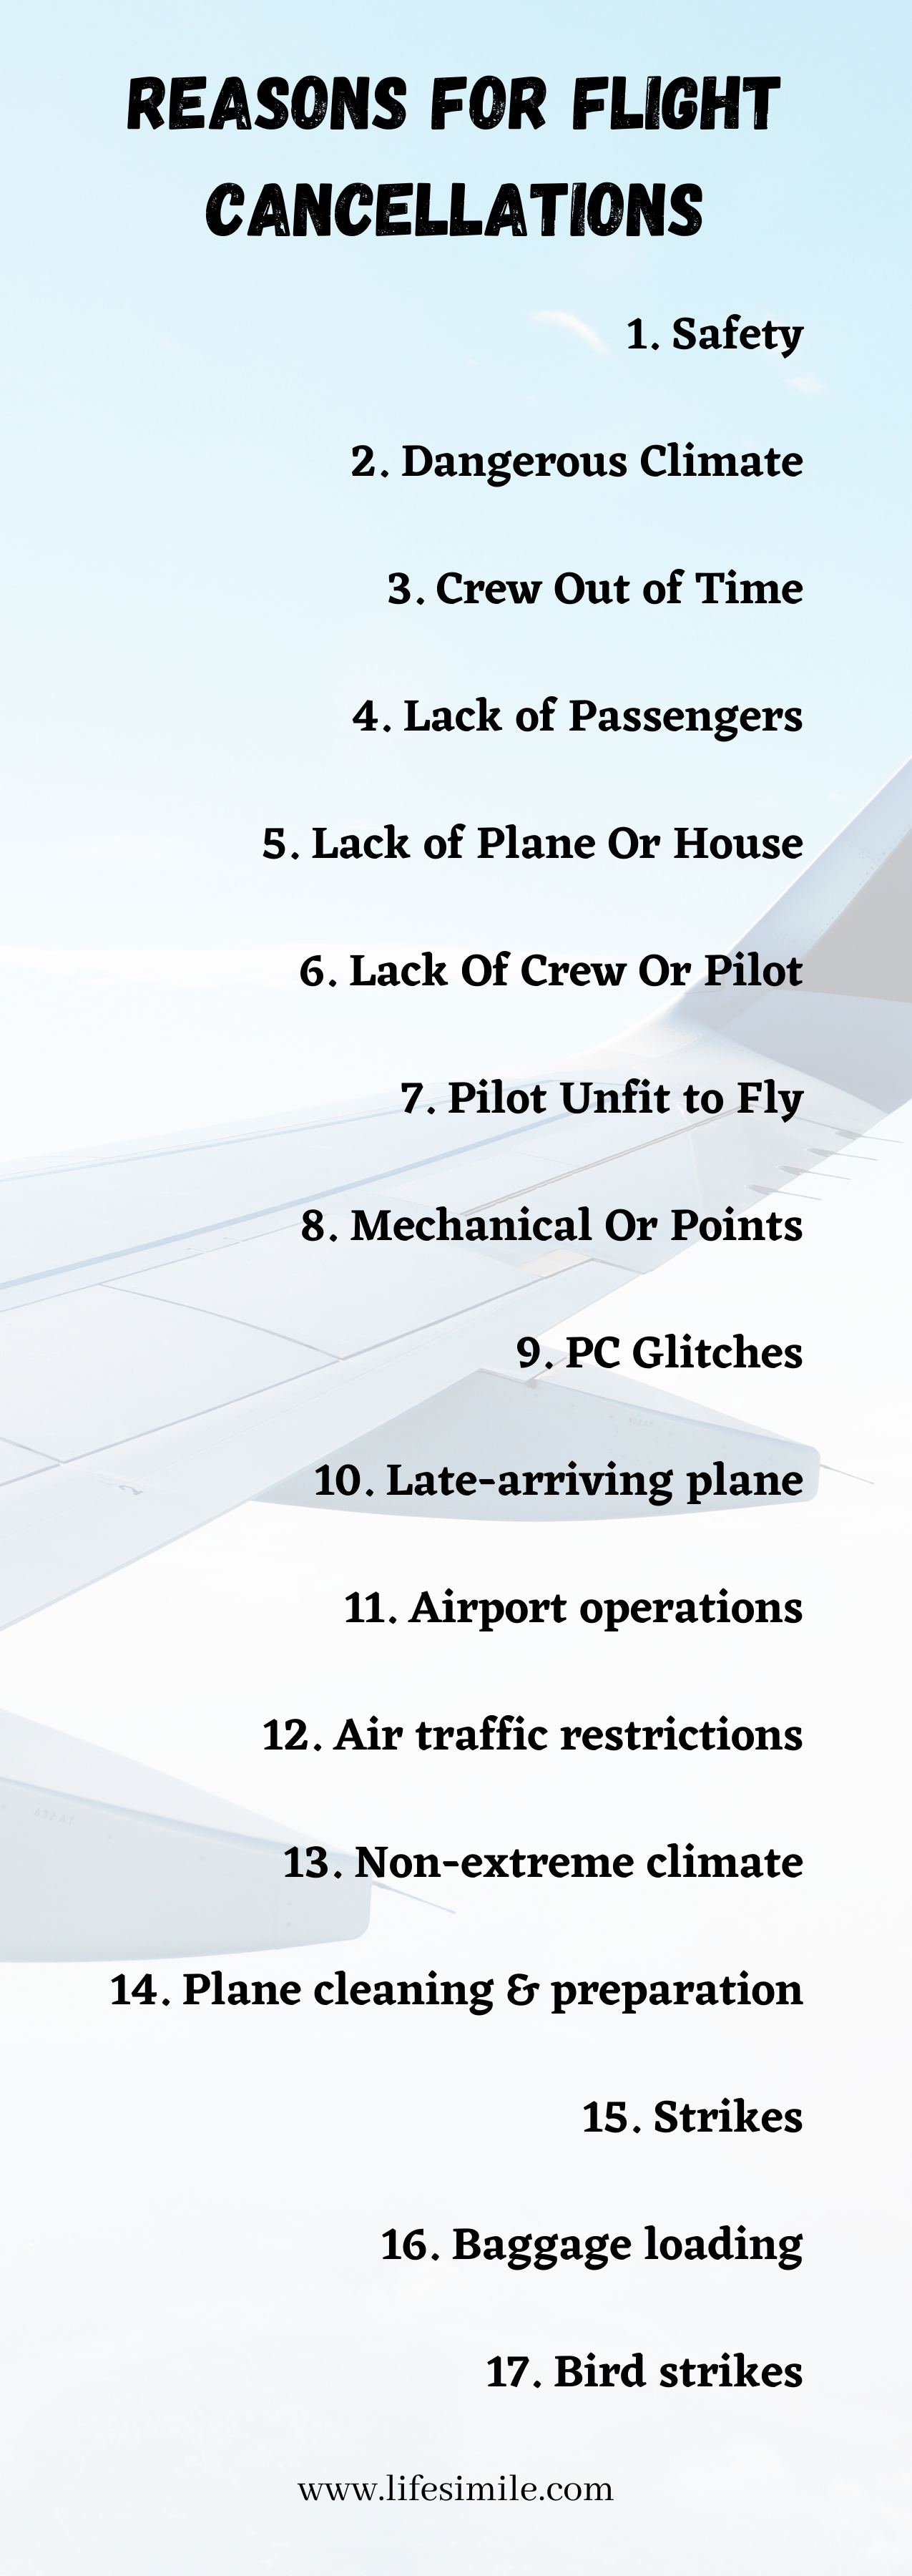 Reasons for Flight Cancellations